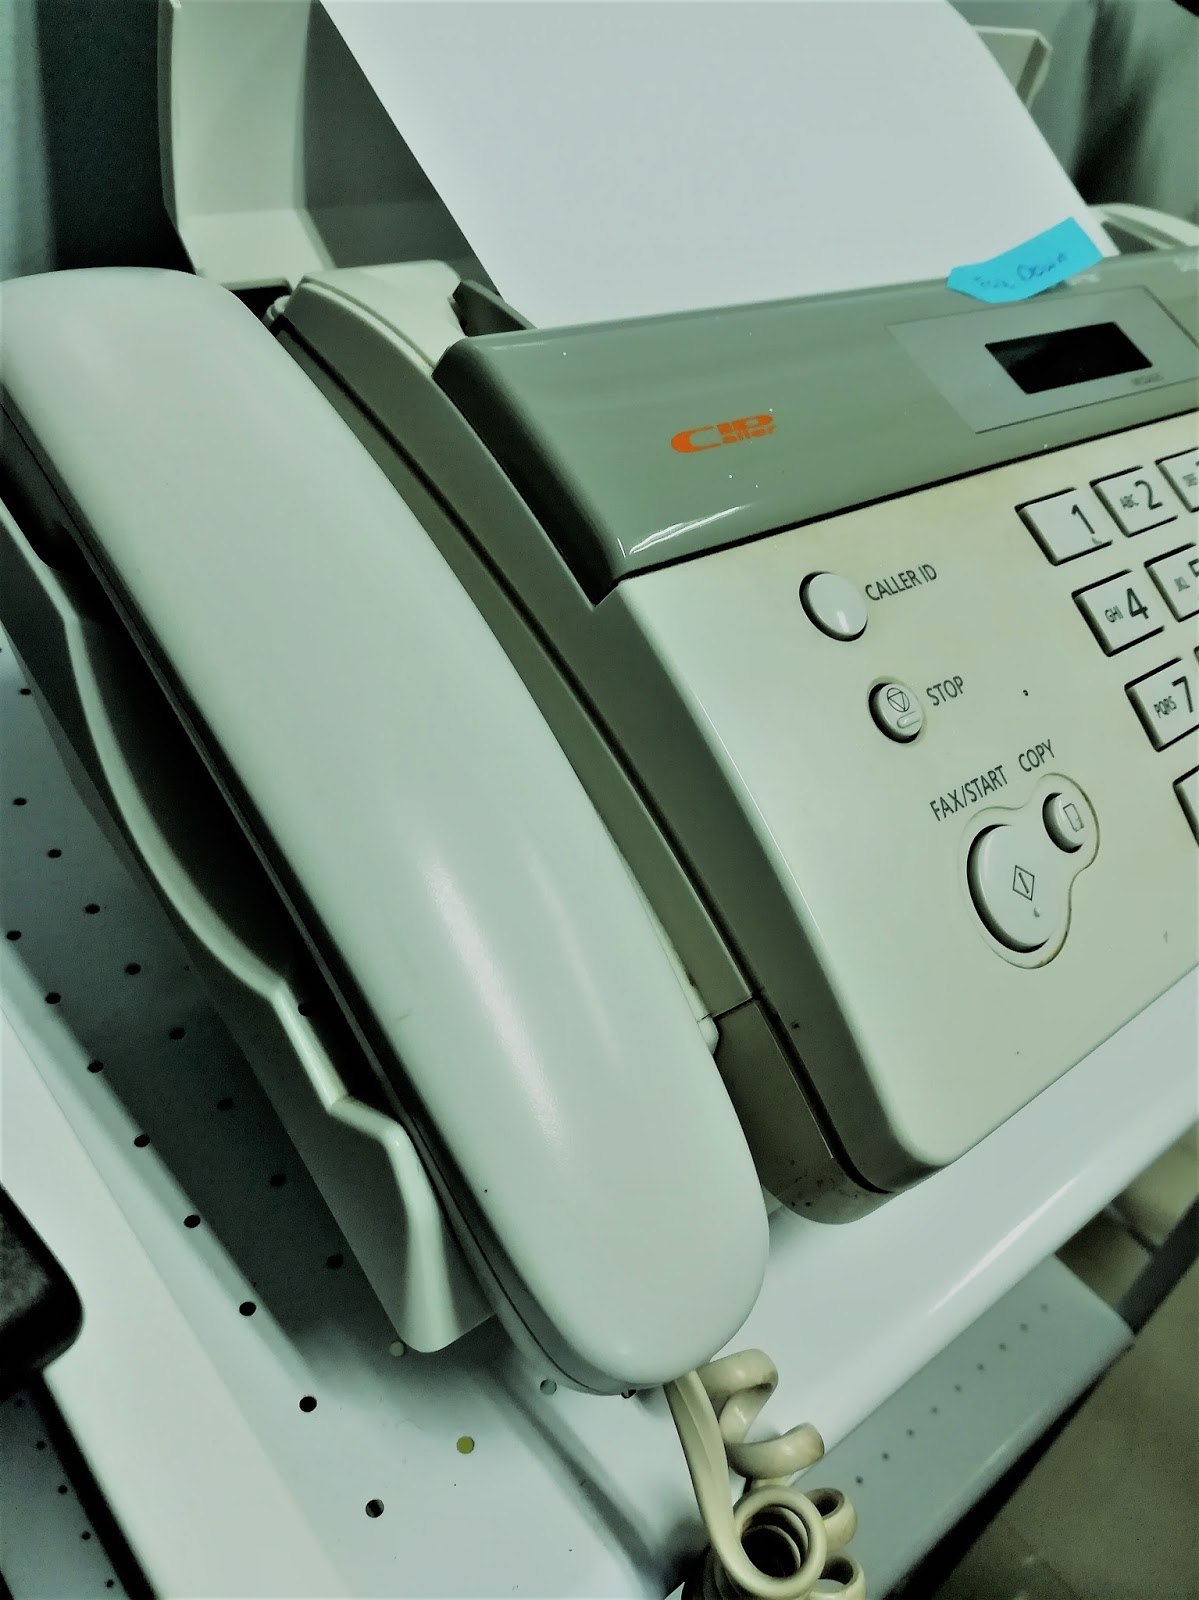 talkless simple steps to send fax message using fax machine